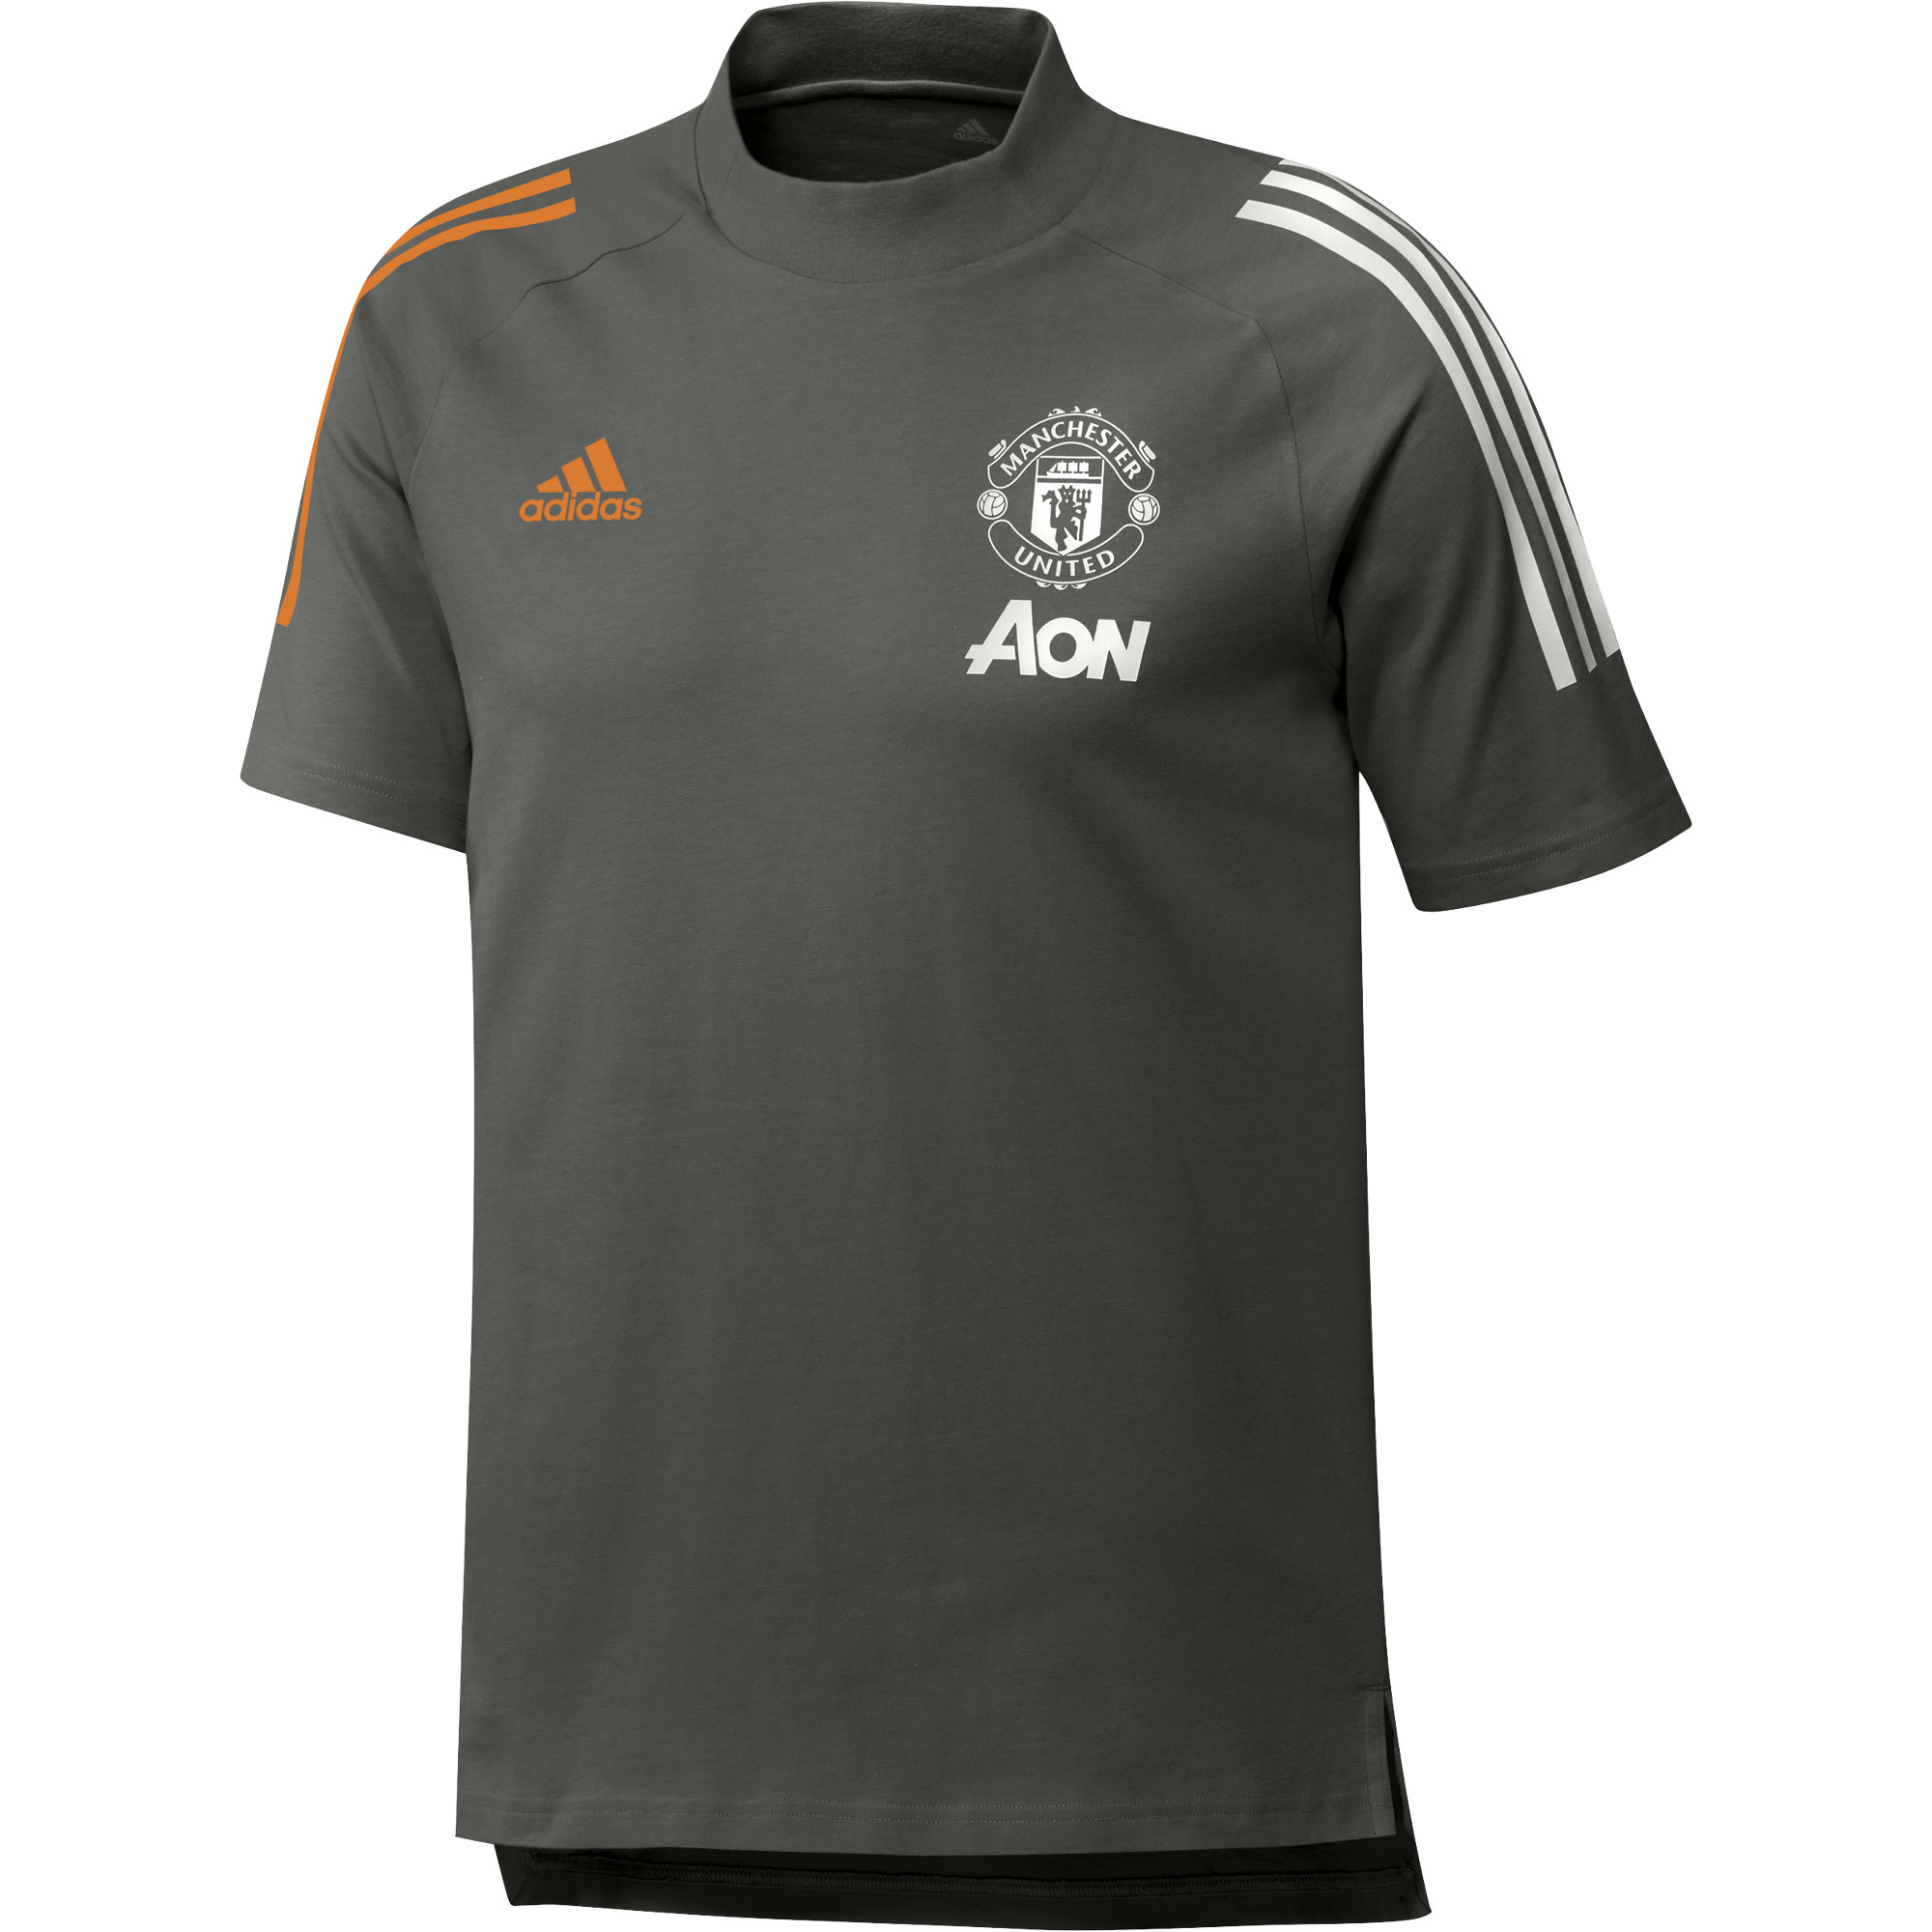 Adidas ADIDAS Manchester United Cotton Jersey